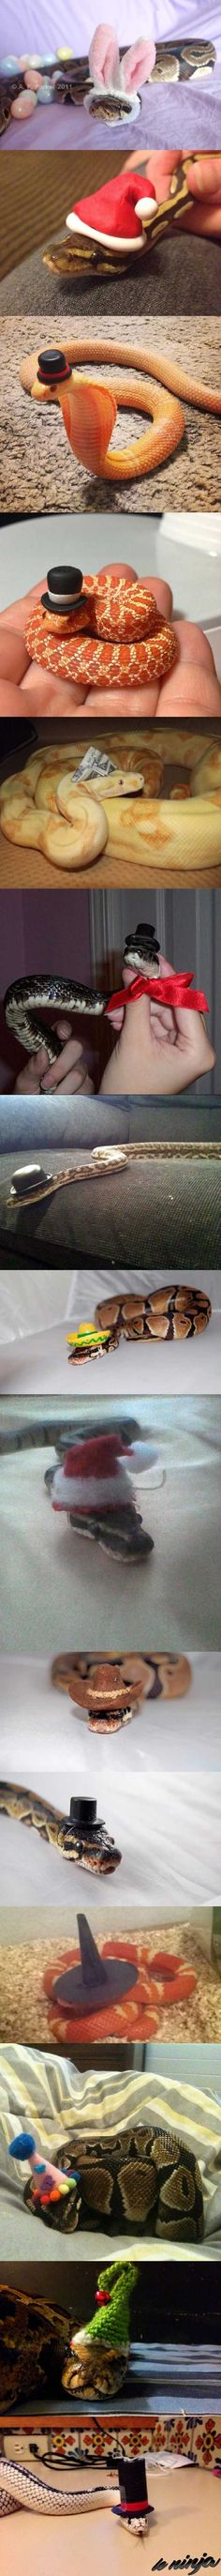 Idk why, but snake are so much less intimidating with hats on.<<< #snakes